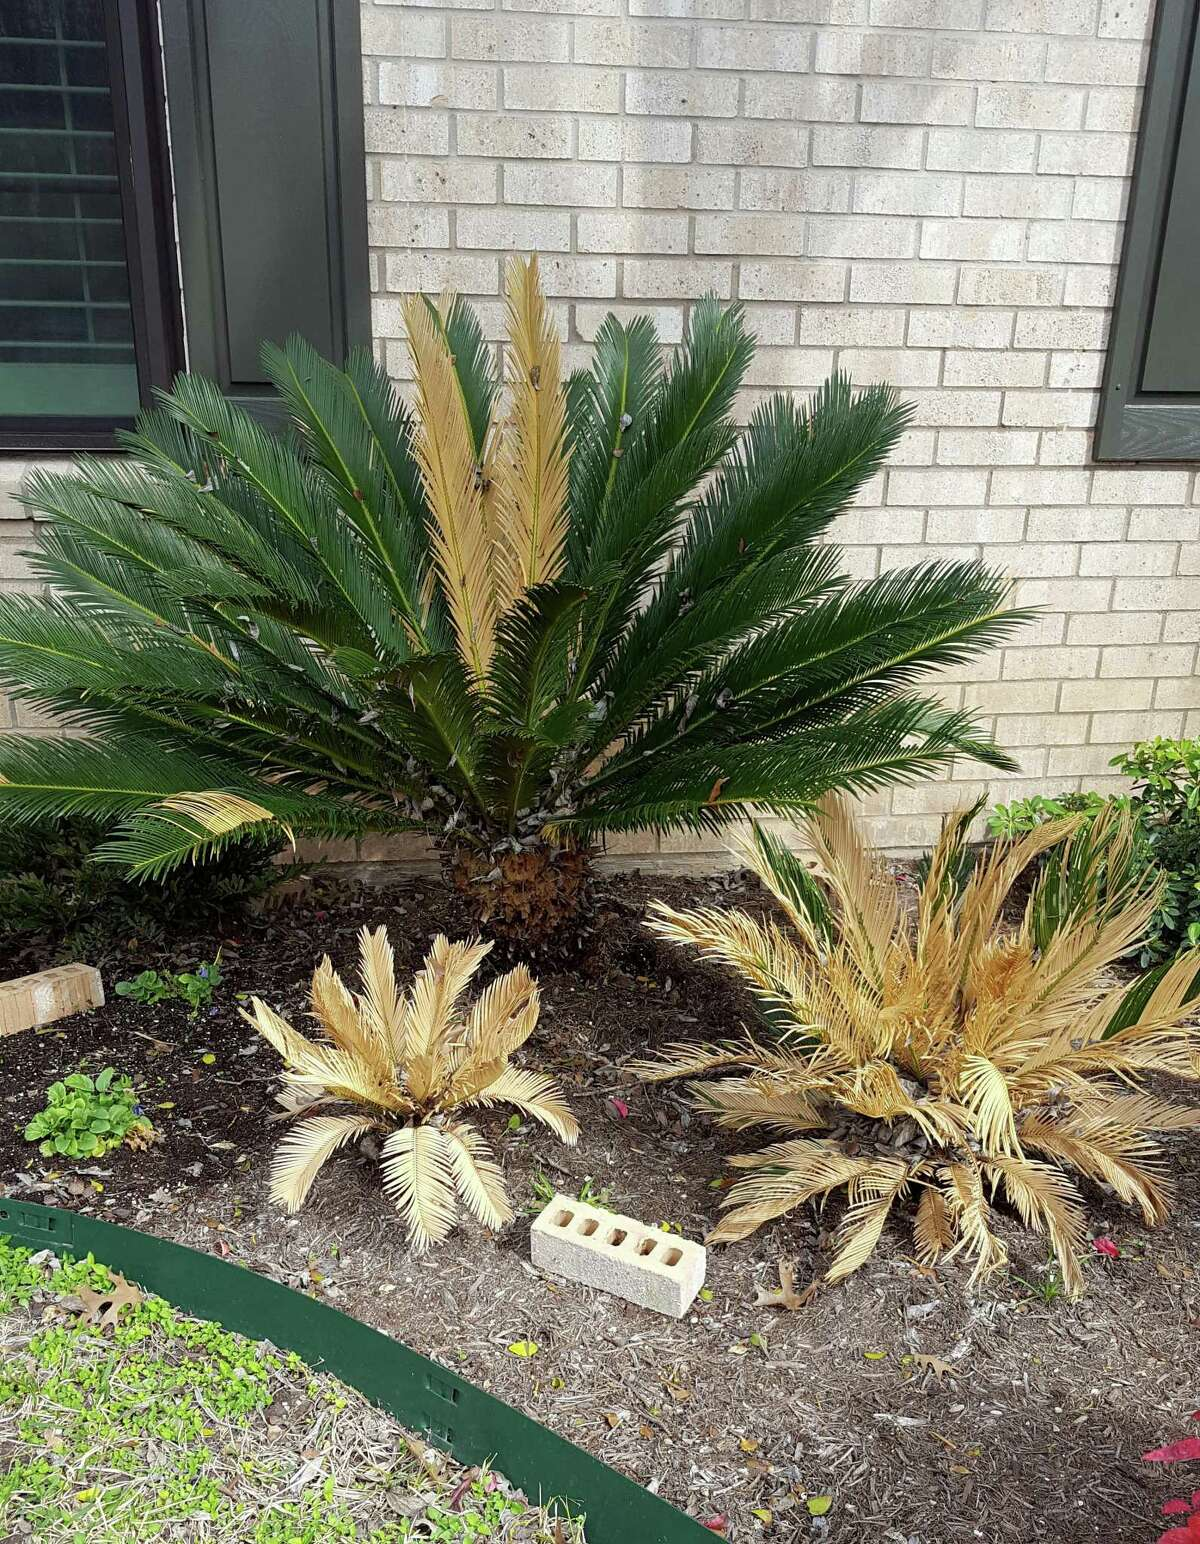 These three sago palm suffered freeze damage. The larger one looks like it will be fine, but the younger ones are probably gone. This winter's cold temperatures proved fatal to many tropical plants in Texas.